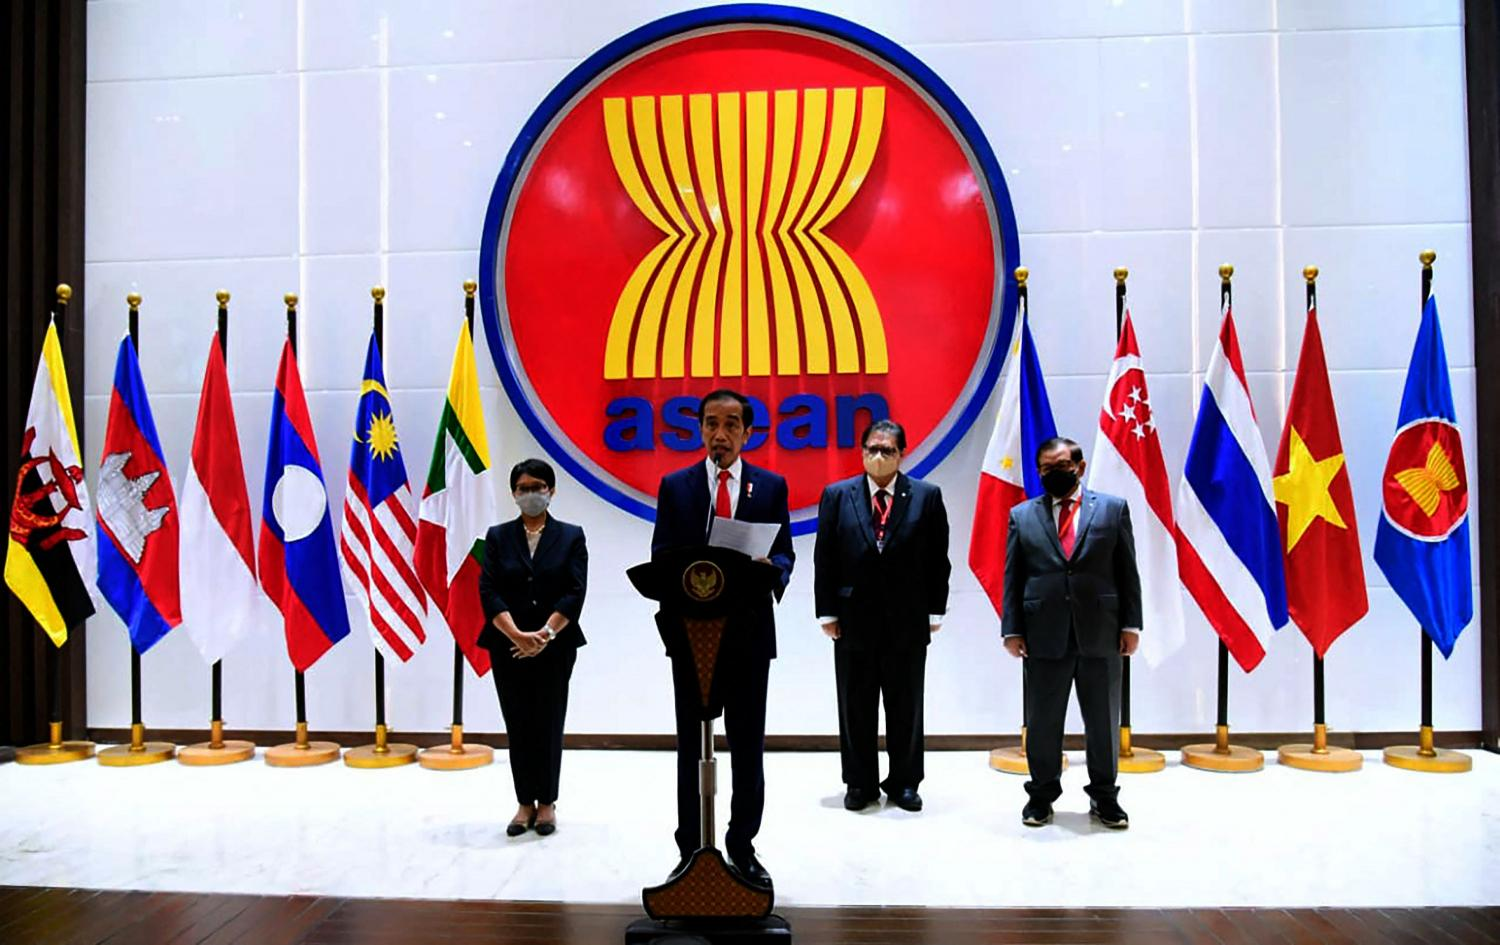 Indonesian President Joko Widodo, centre, delivers a speech at the Asean crisis talks on Myanmar in Jakarta on Saturday. From now on, Asean will be busy managing the crisis in Myanmar as part of the regional process of settling disputes.AFP